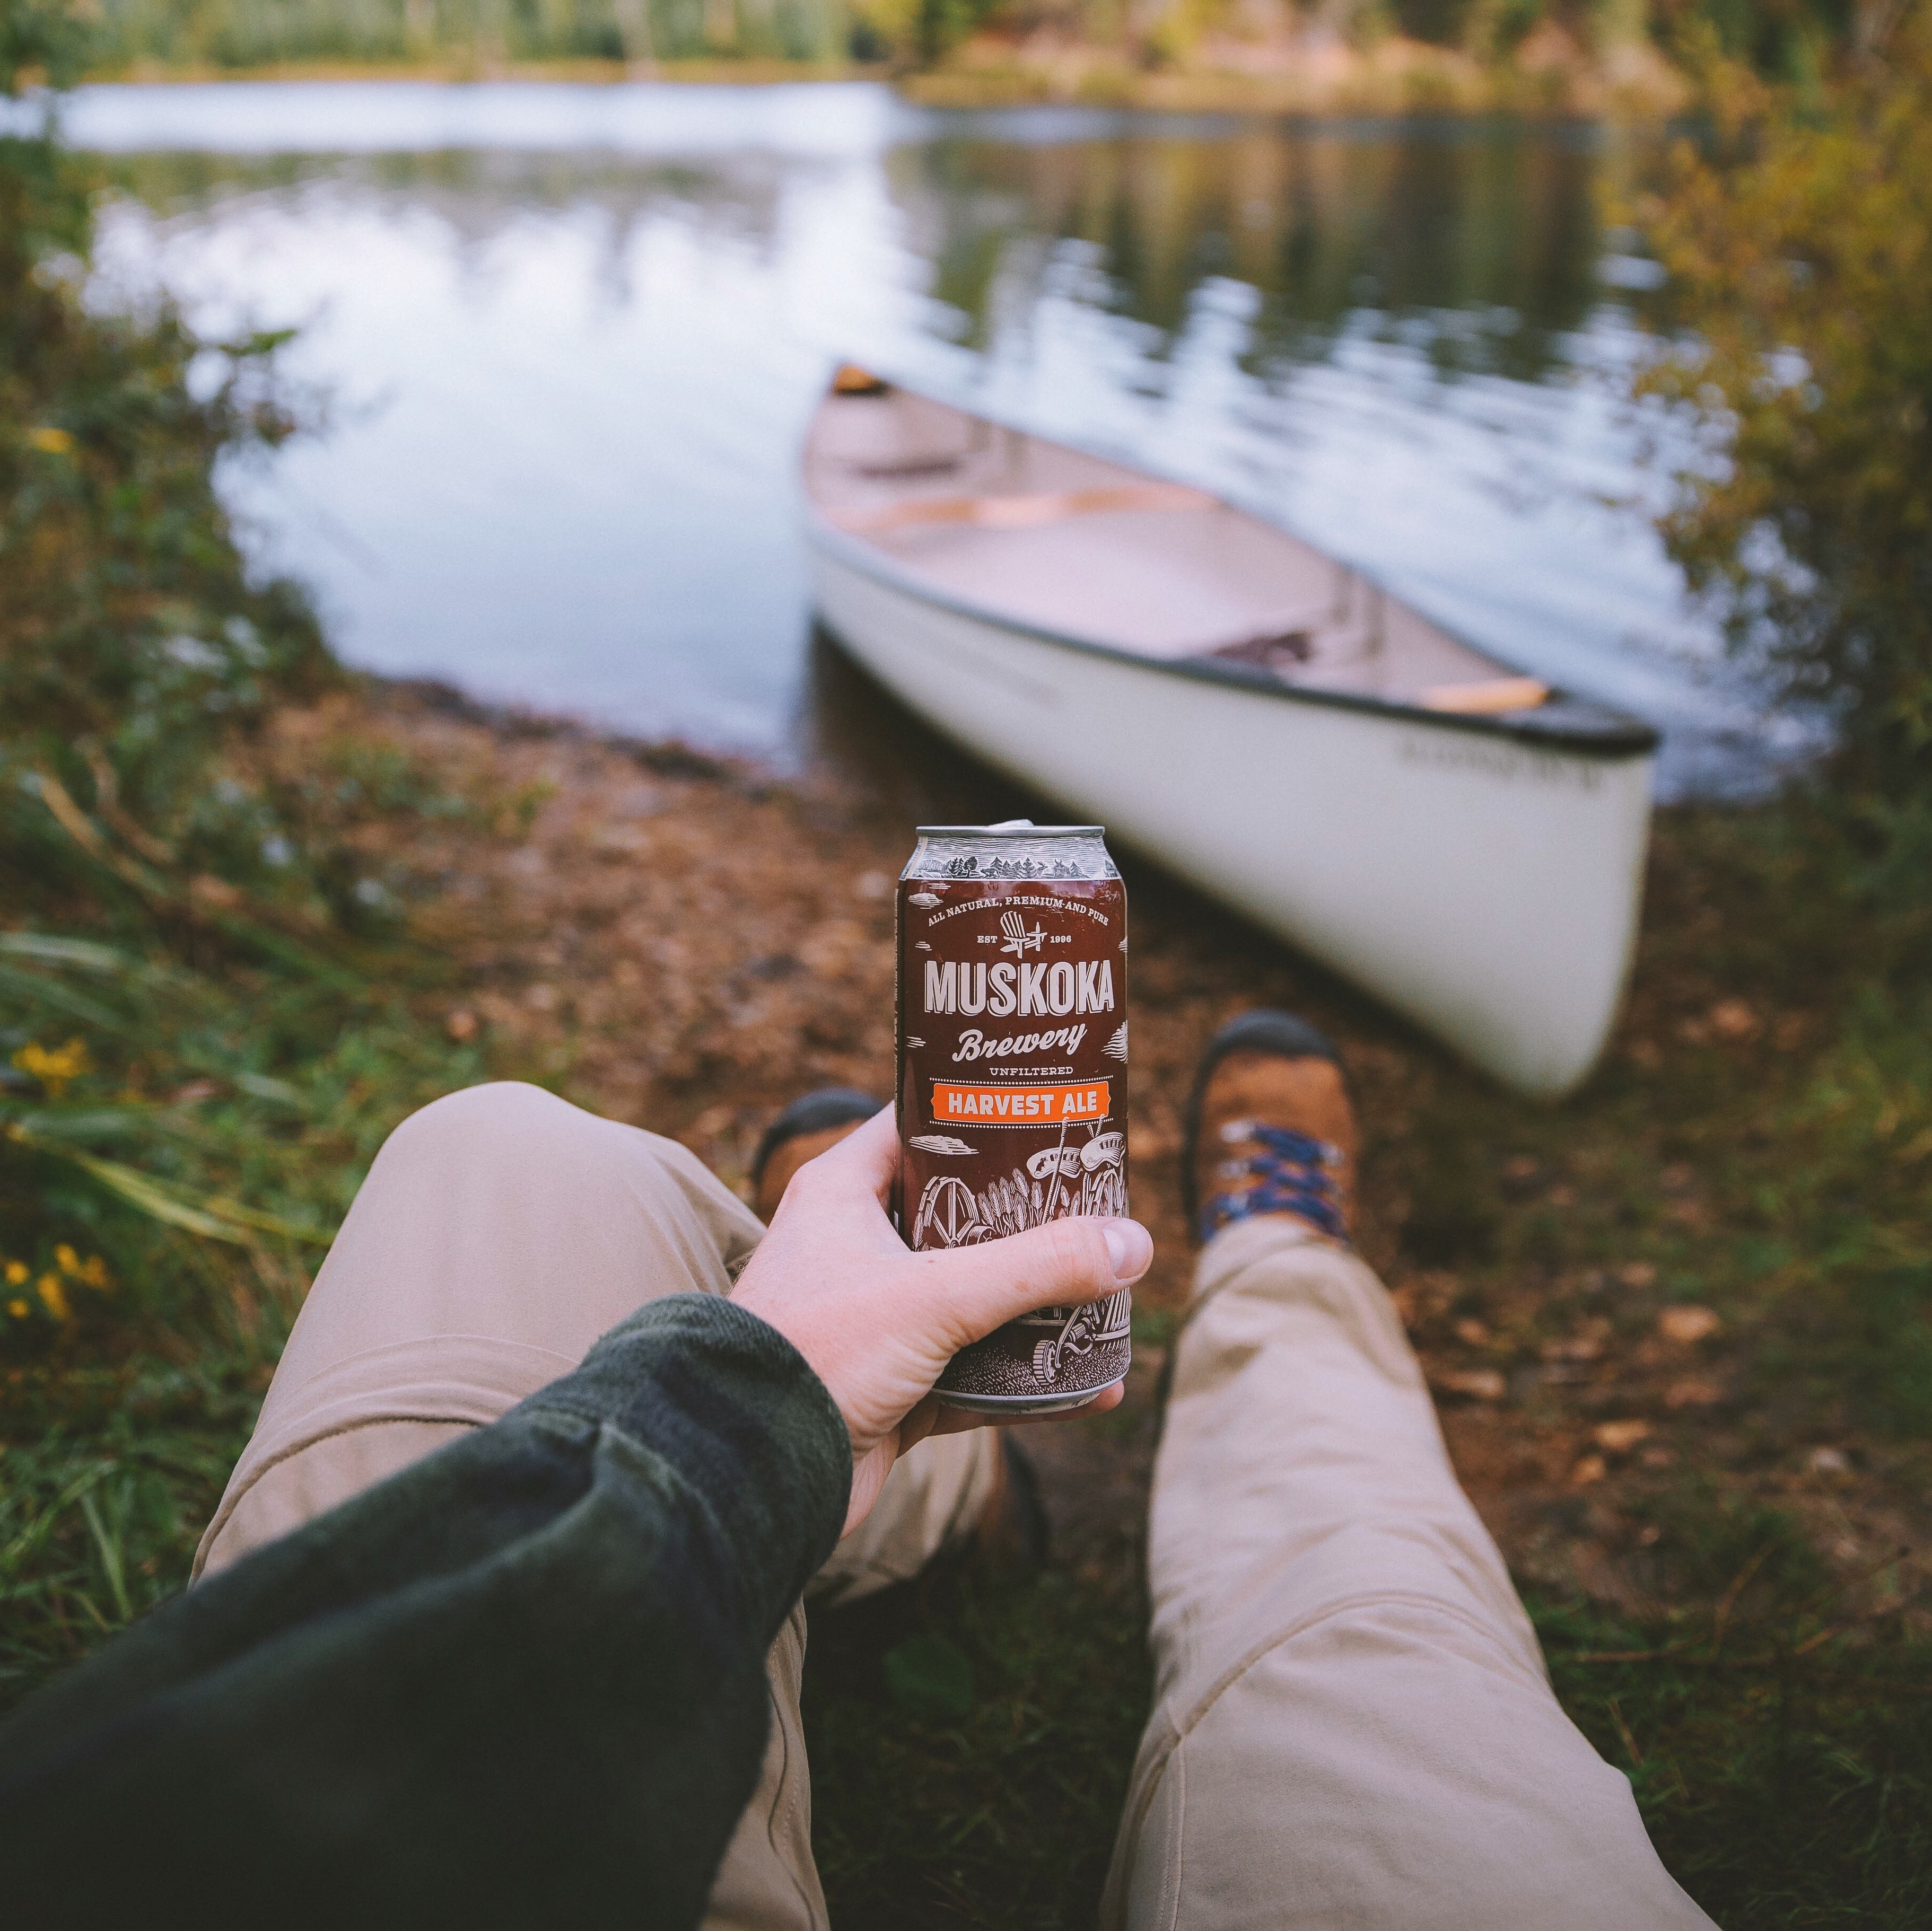 Harvest Ale in front of a canoe and lakeview.